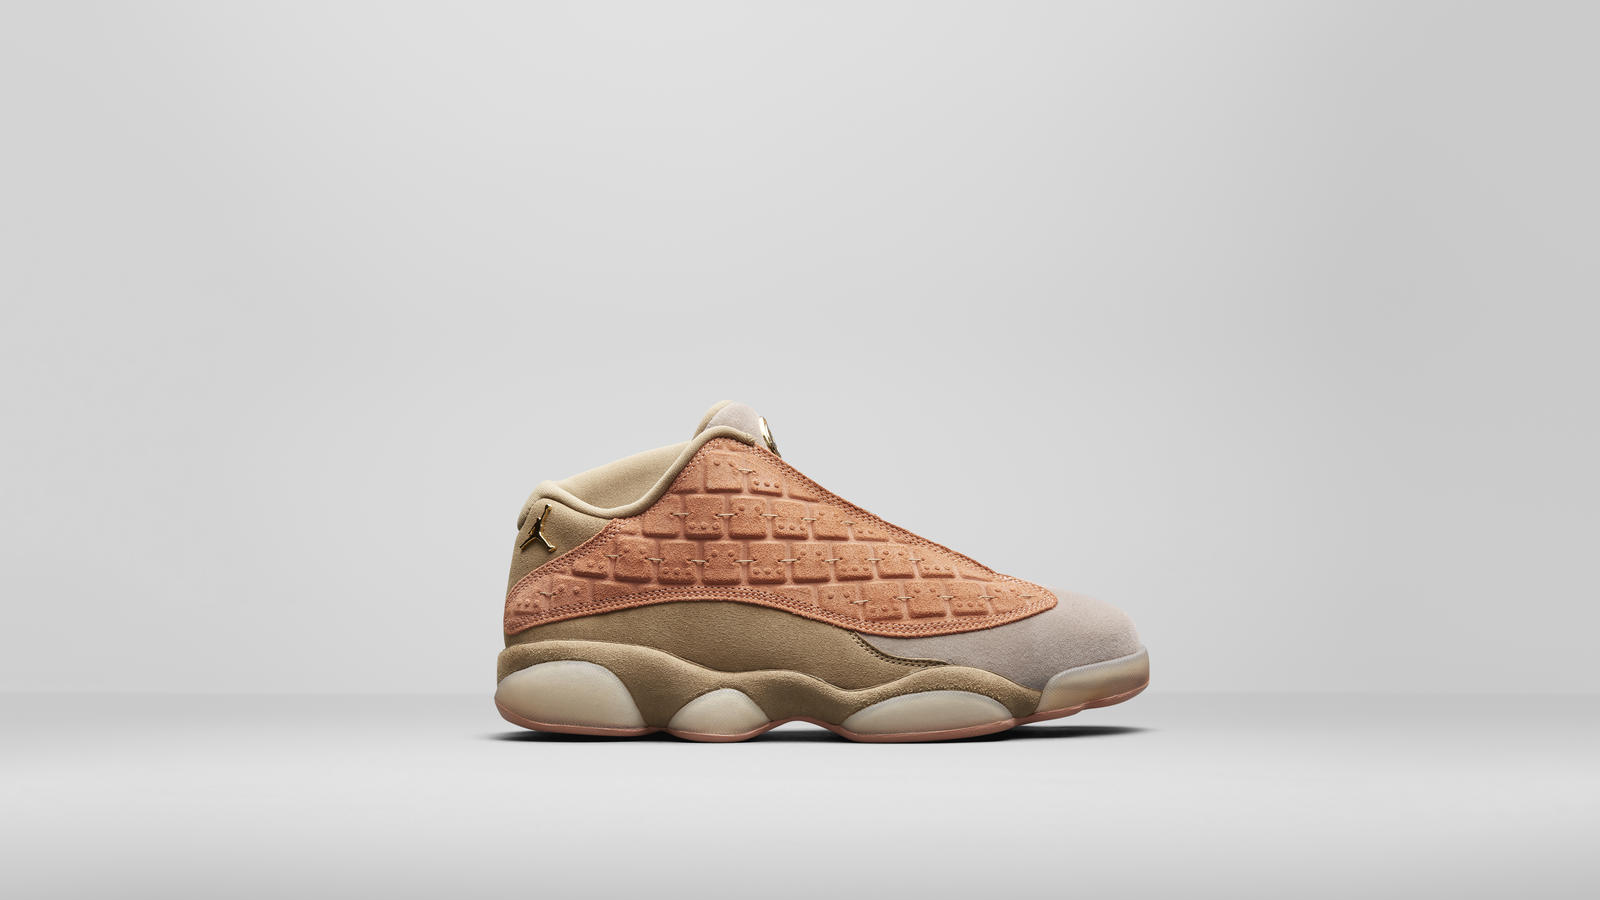 6cf0568f3a0 Clot Air Jordan 13 - Nike News